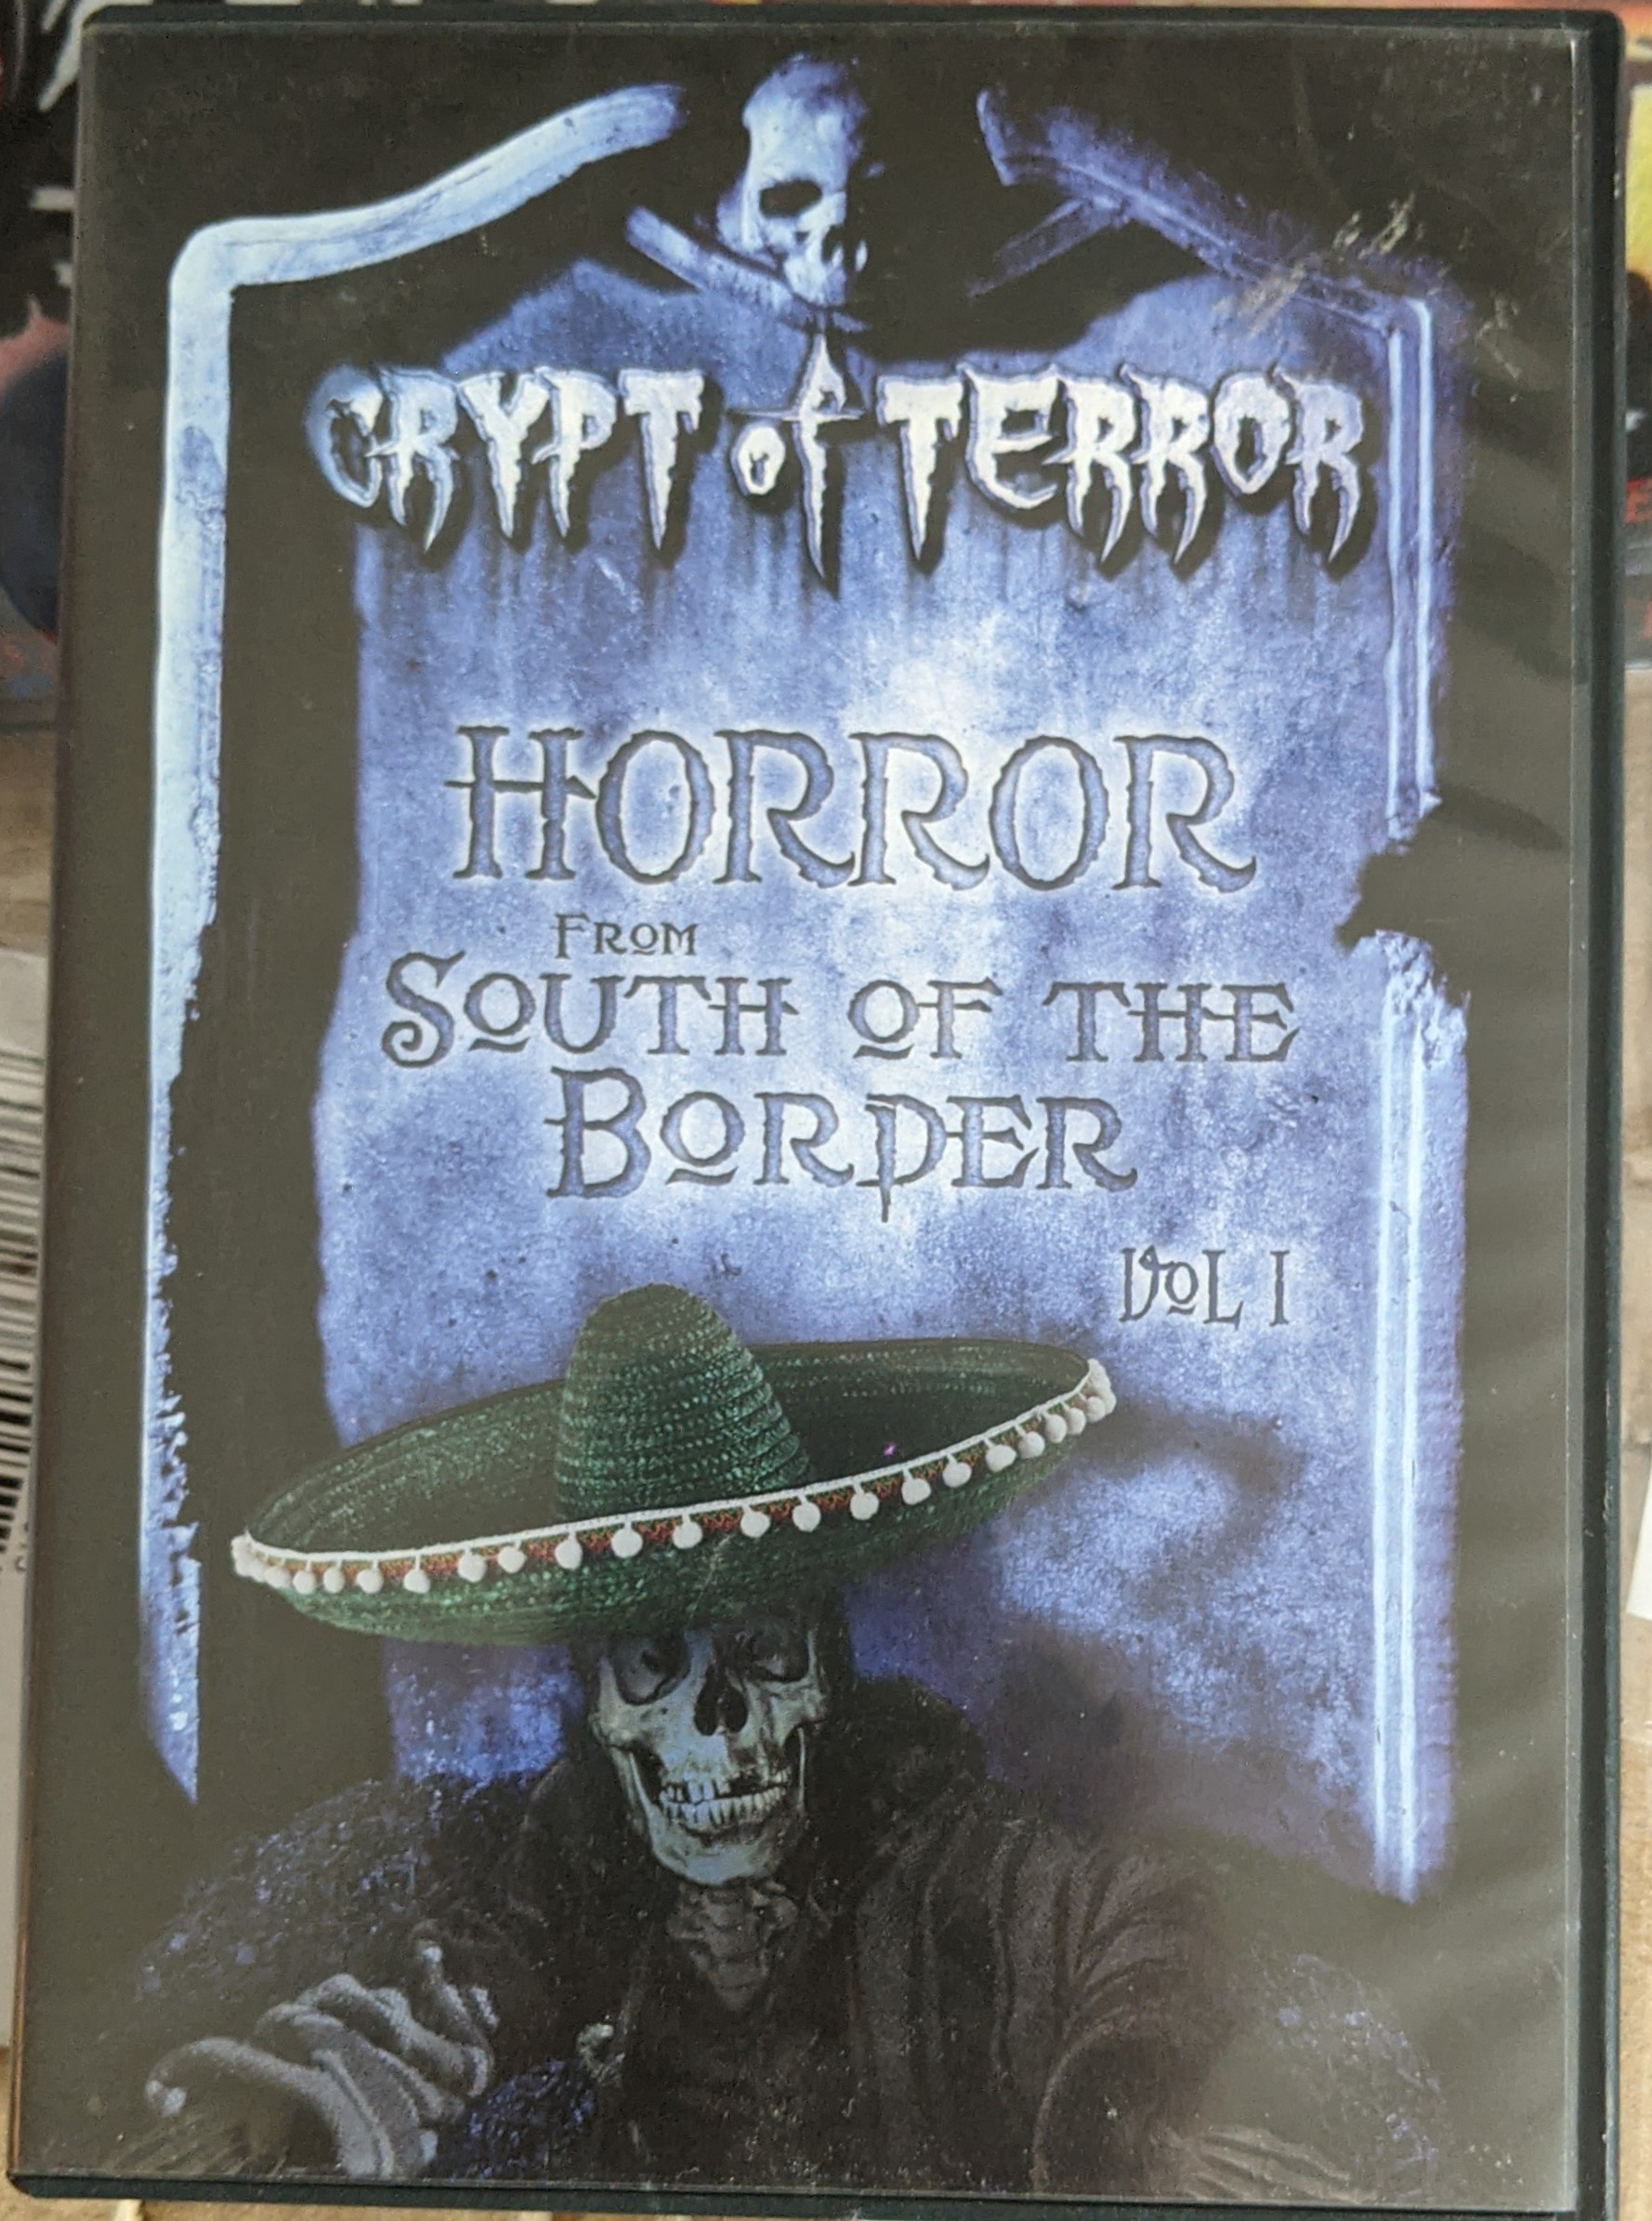 Crypt of Terror - Horror from South of the Border Vol. 1 (DVD, 2007, 4-Disc Set) Pre Owned